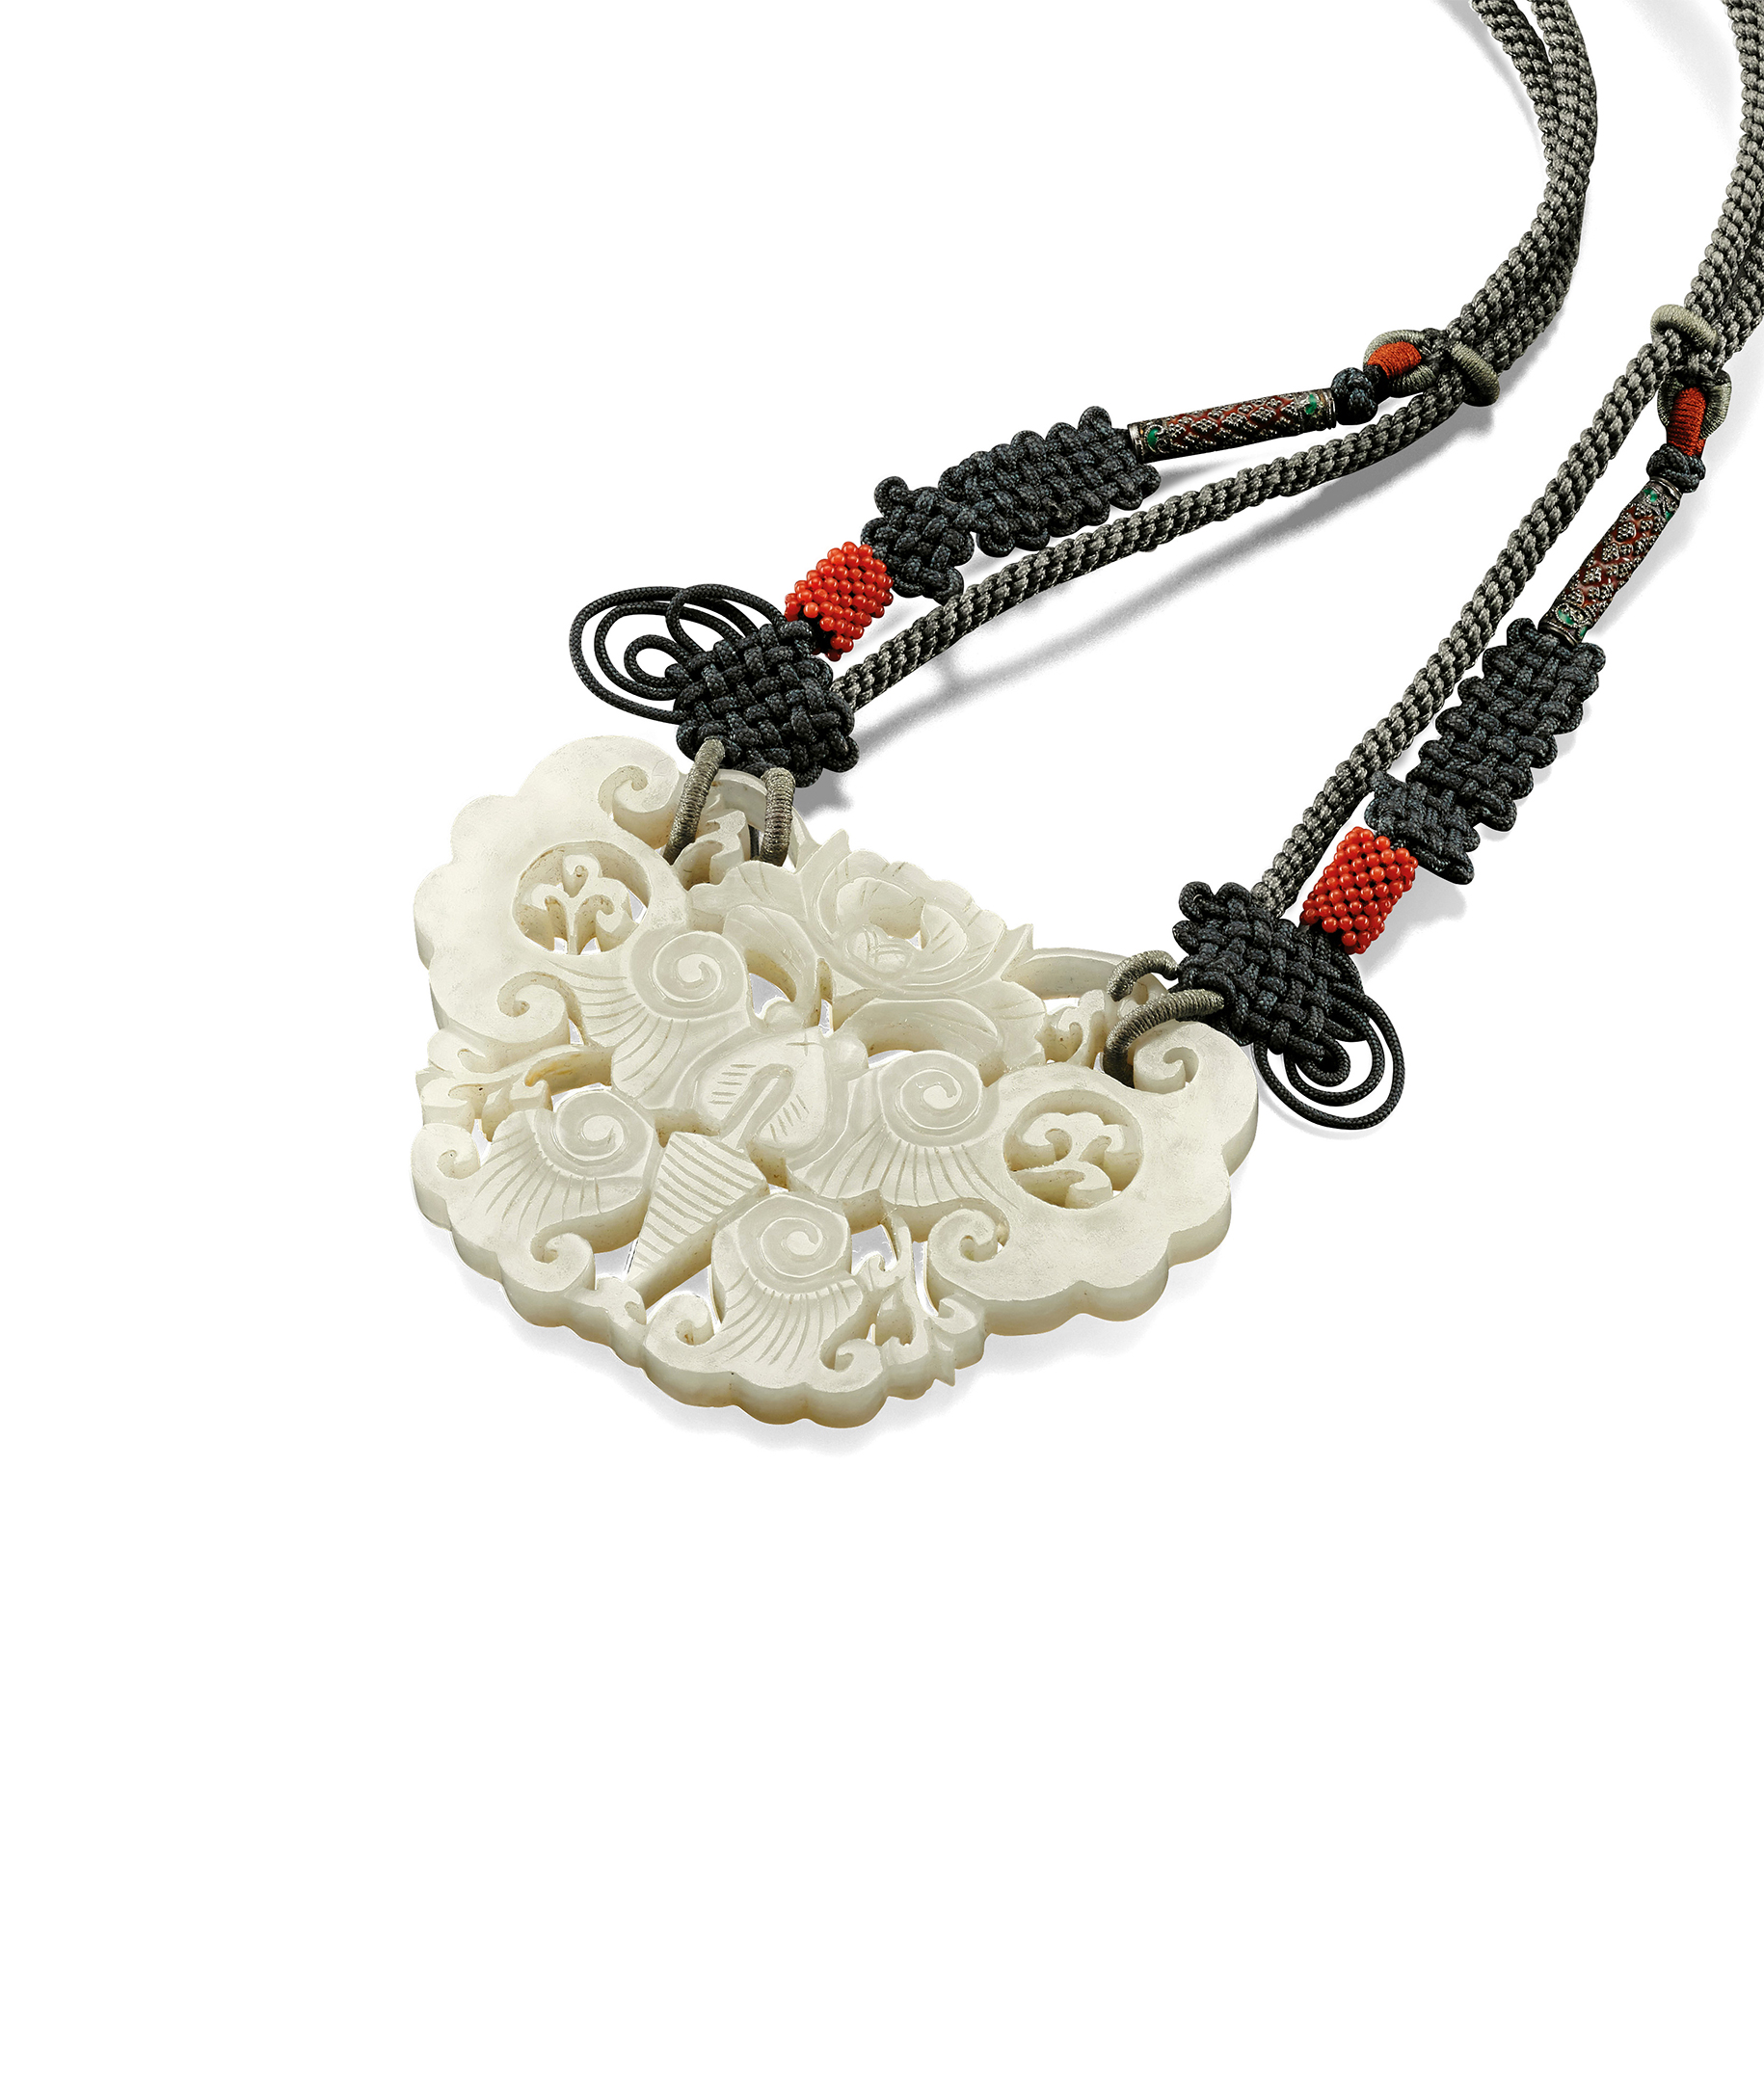 A WHITE JADE OPENWORK 'BUTTERFLY' PENDANT